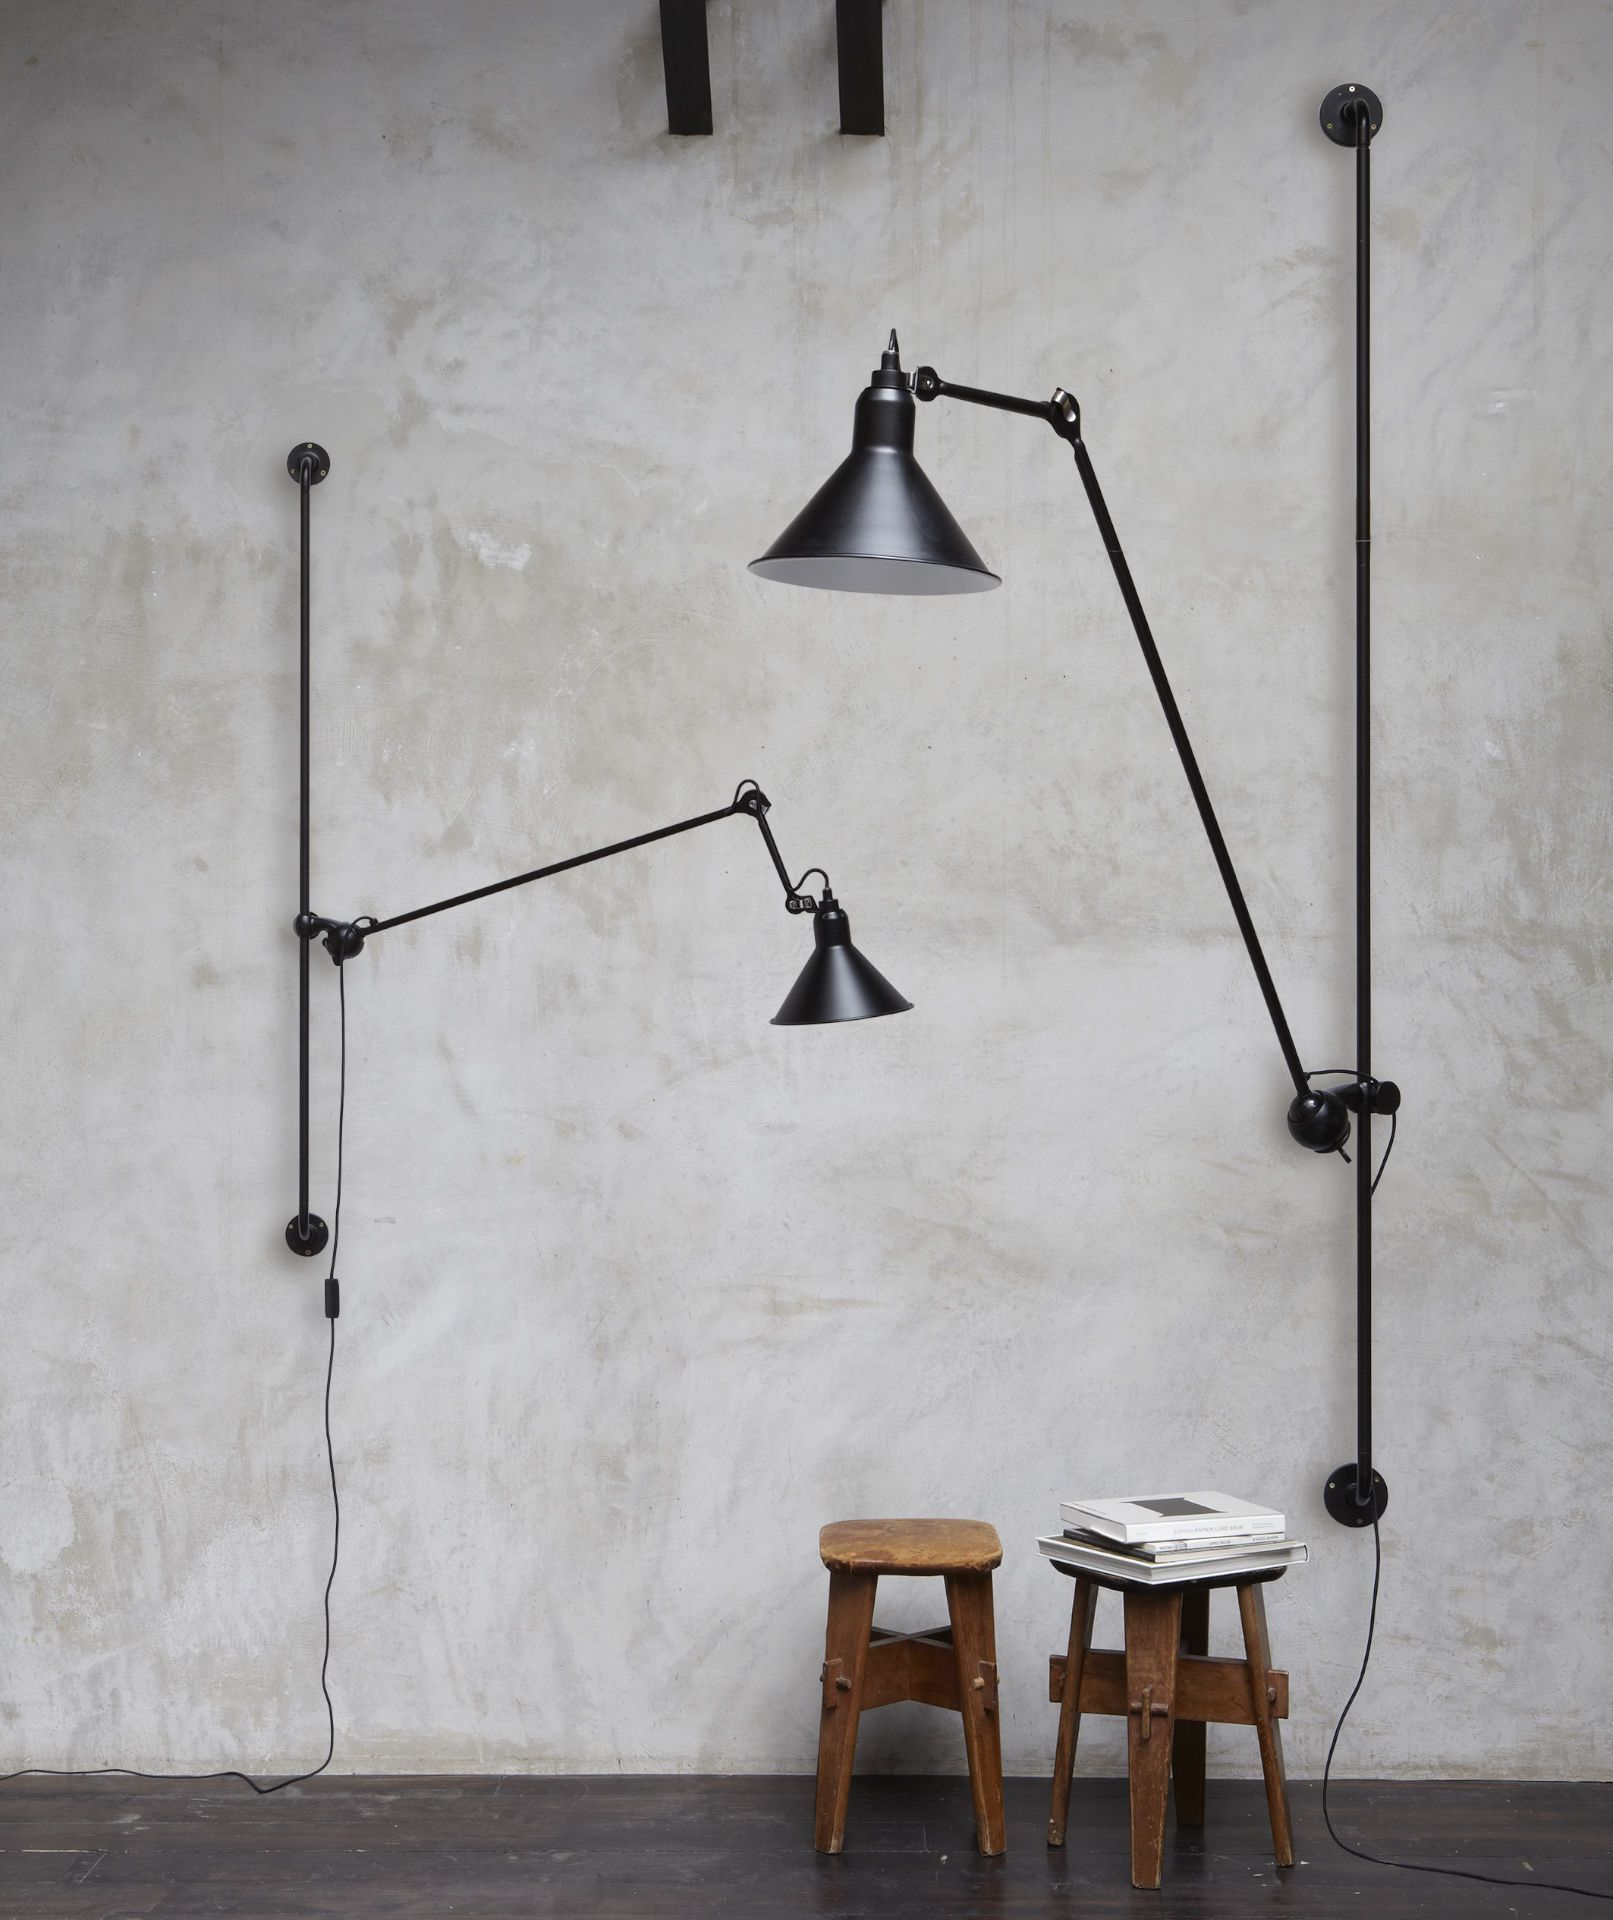 Lampe Gras 214 Wall Lamp Is A Variation Of The Classic Lampe D